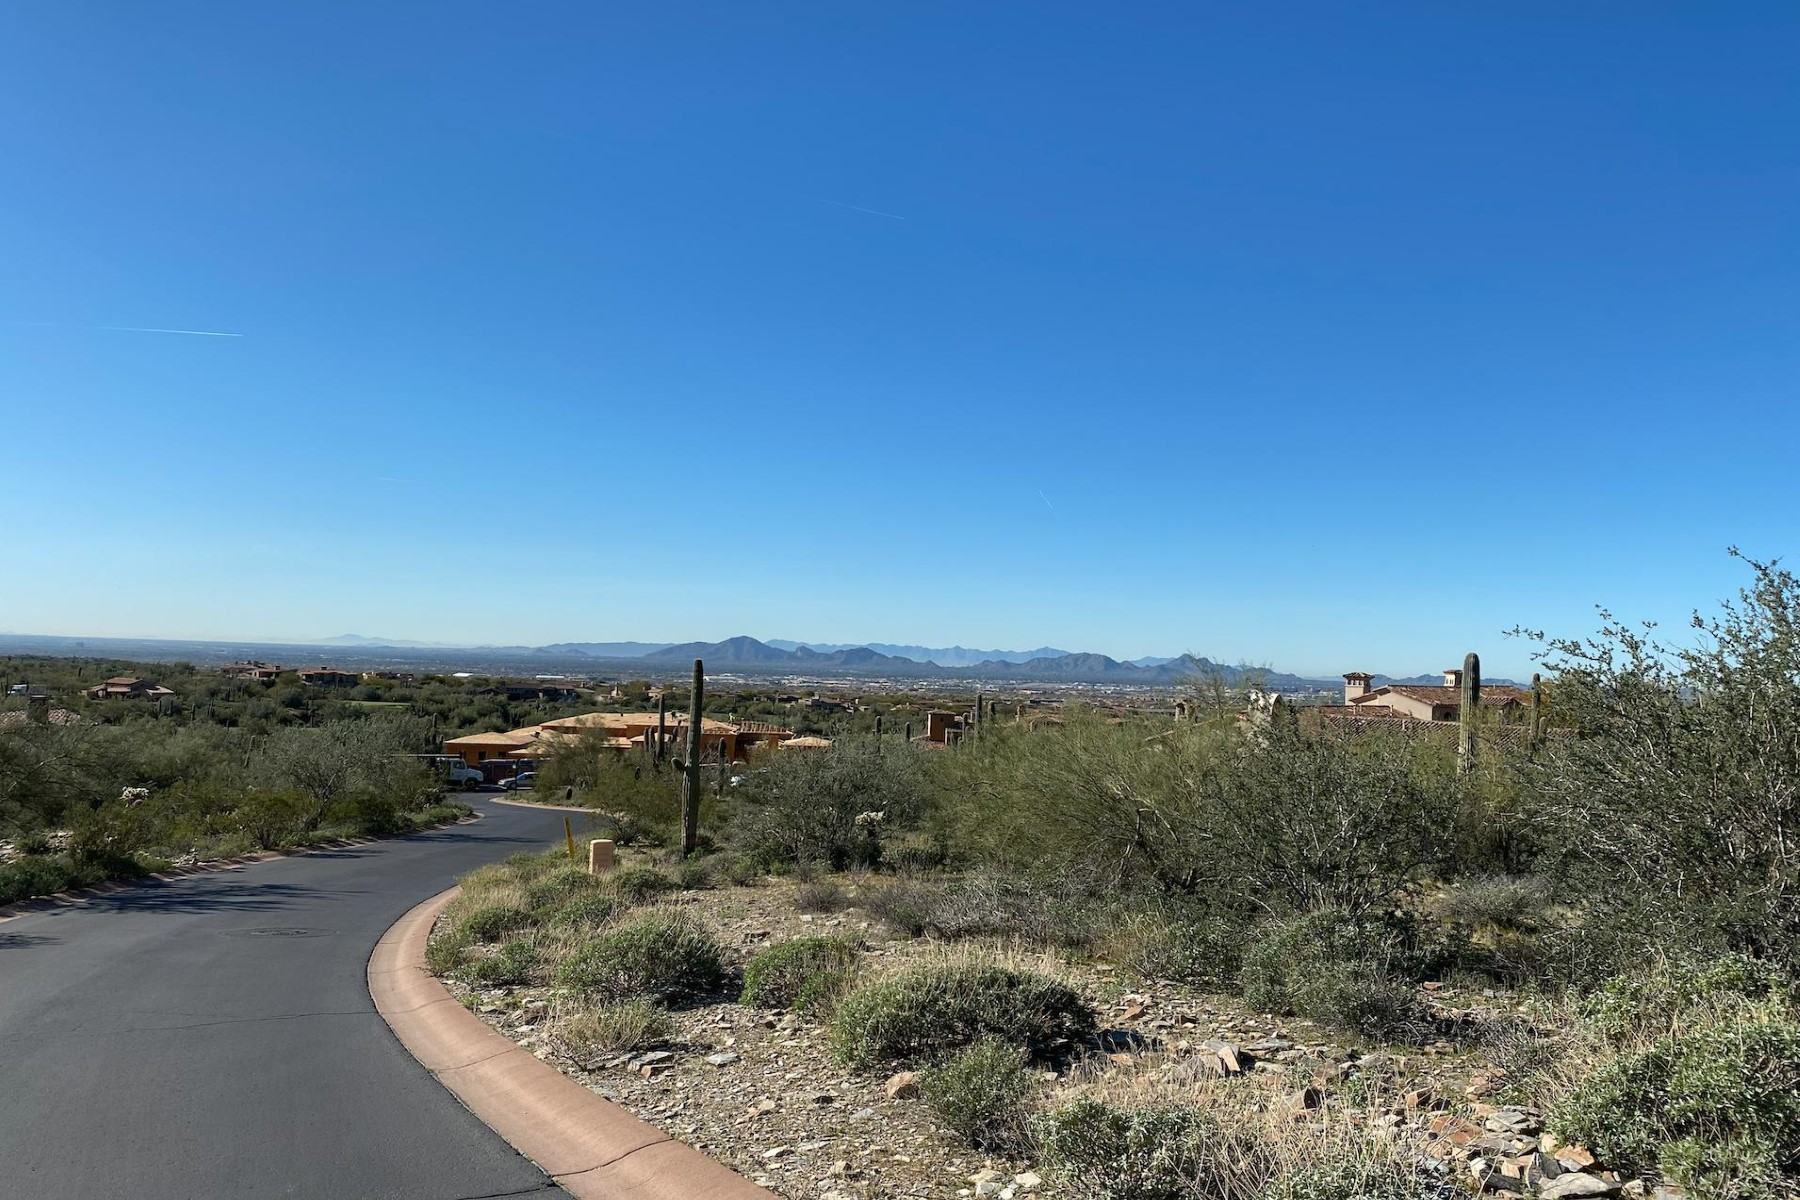 Property for Sale at DC Ranch Silverleaf 20948 N 104TH WAY 1486, Scottsdale, Arizona 85255 United States